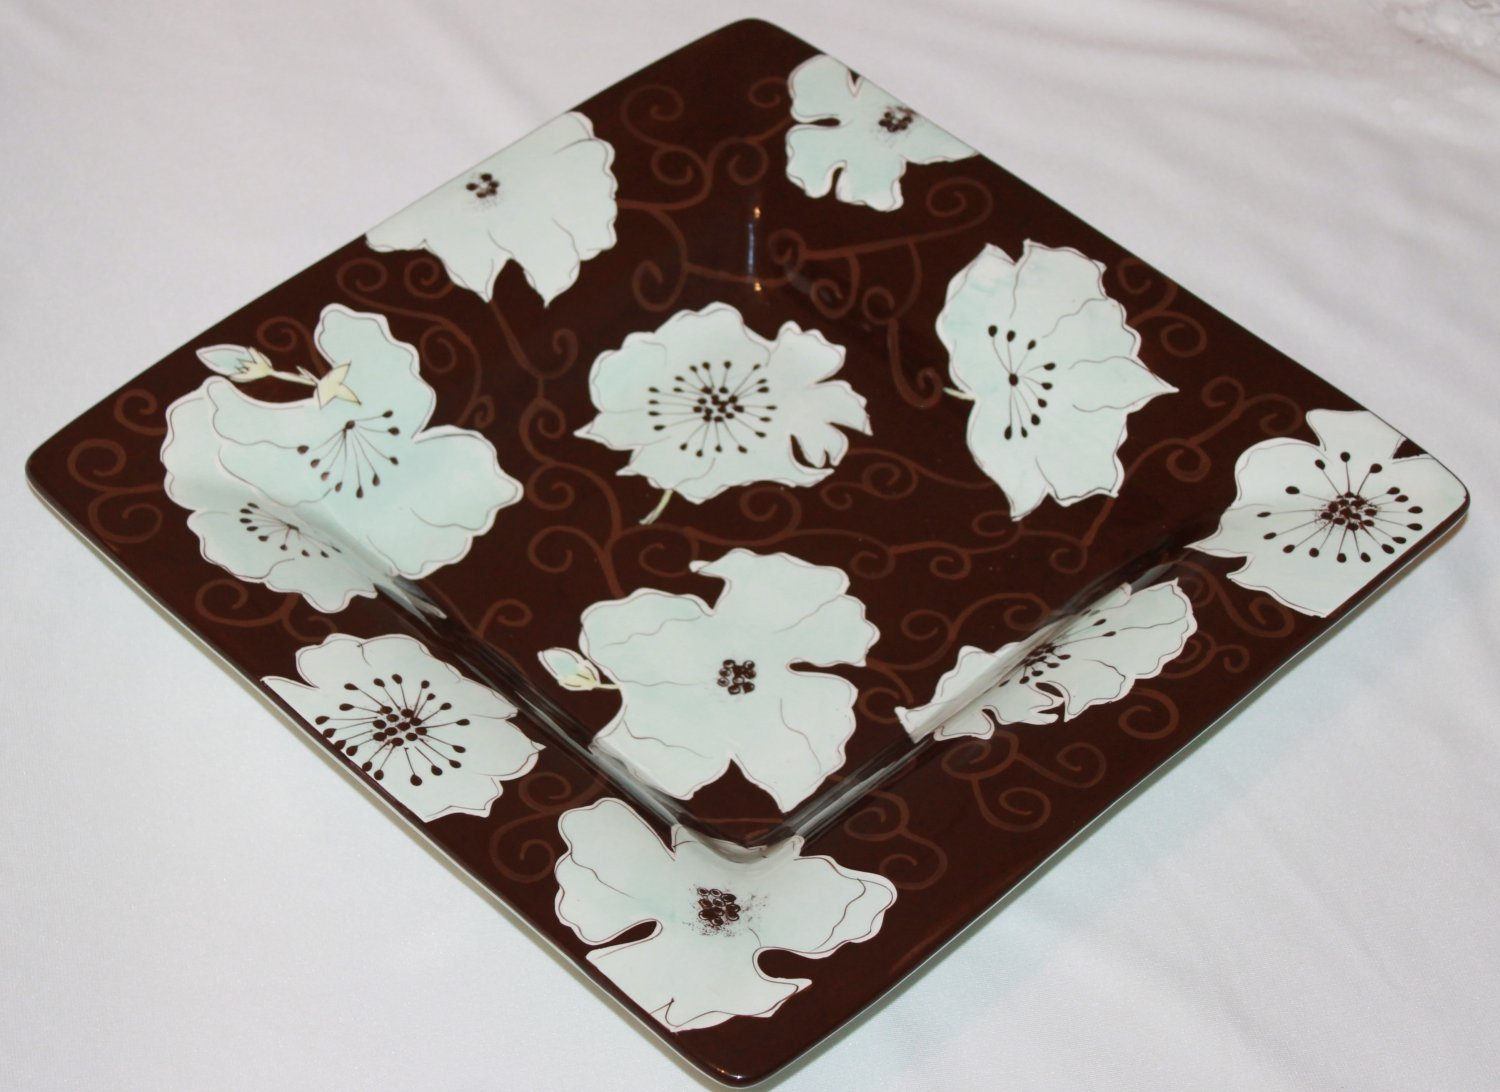 Serving Dish brown with light blue flowers